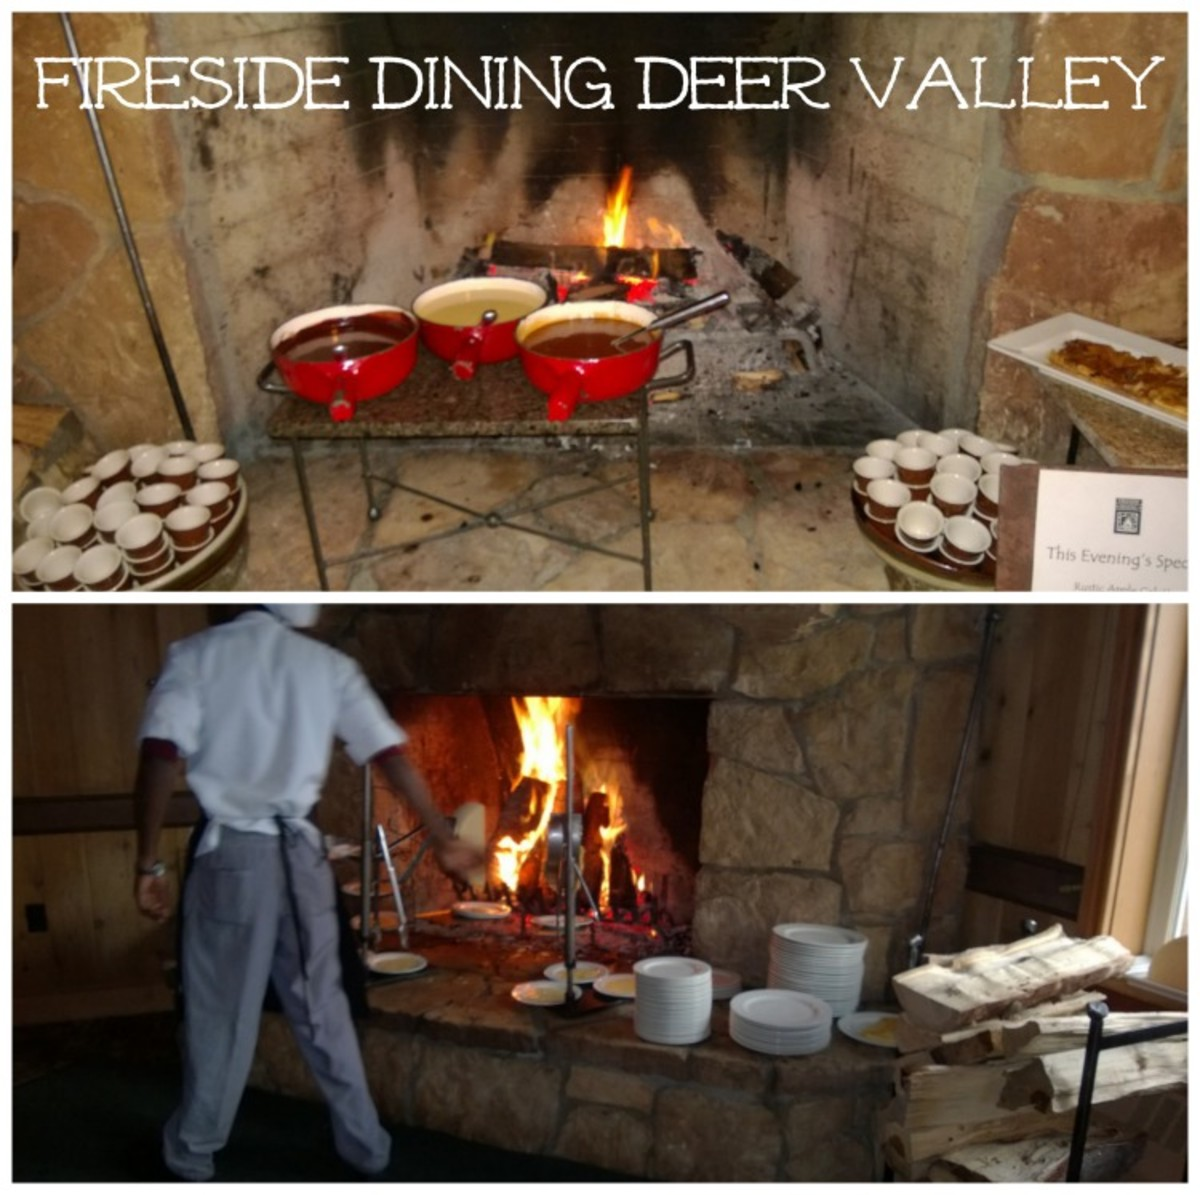 fireside dining deer valley